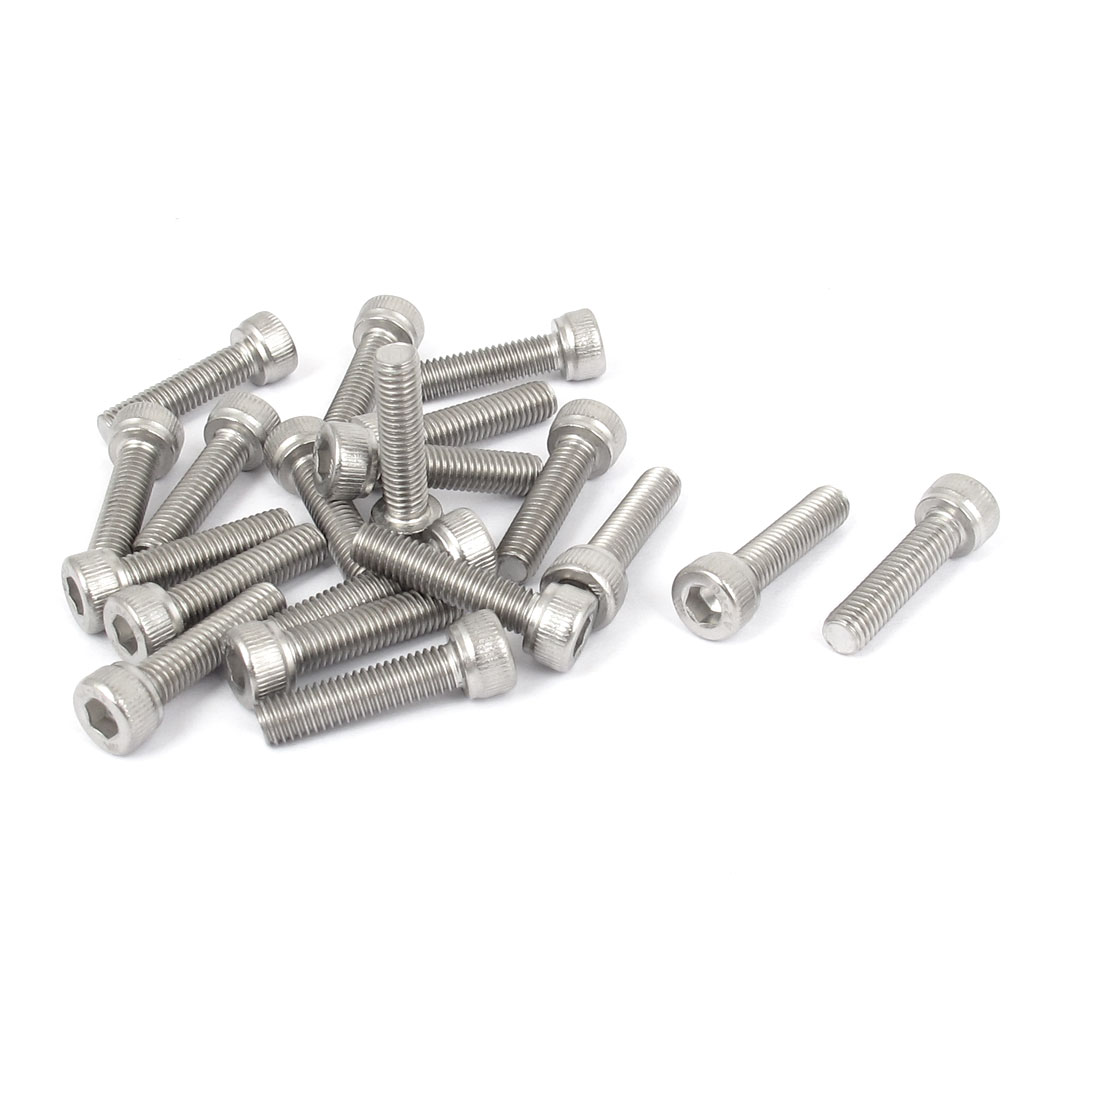 M5x20mm Thread 304 Stainless Steel Hex Key Bolt Socket Head Cap Screws 20pcs